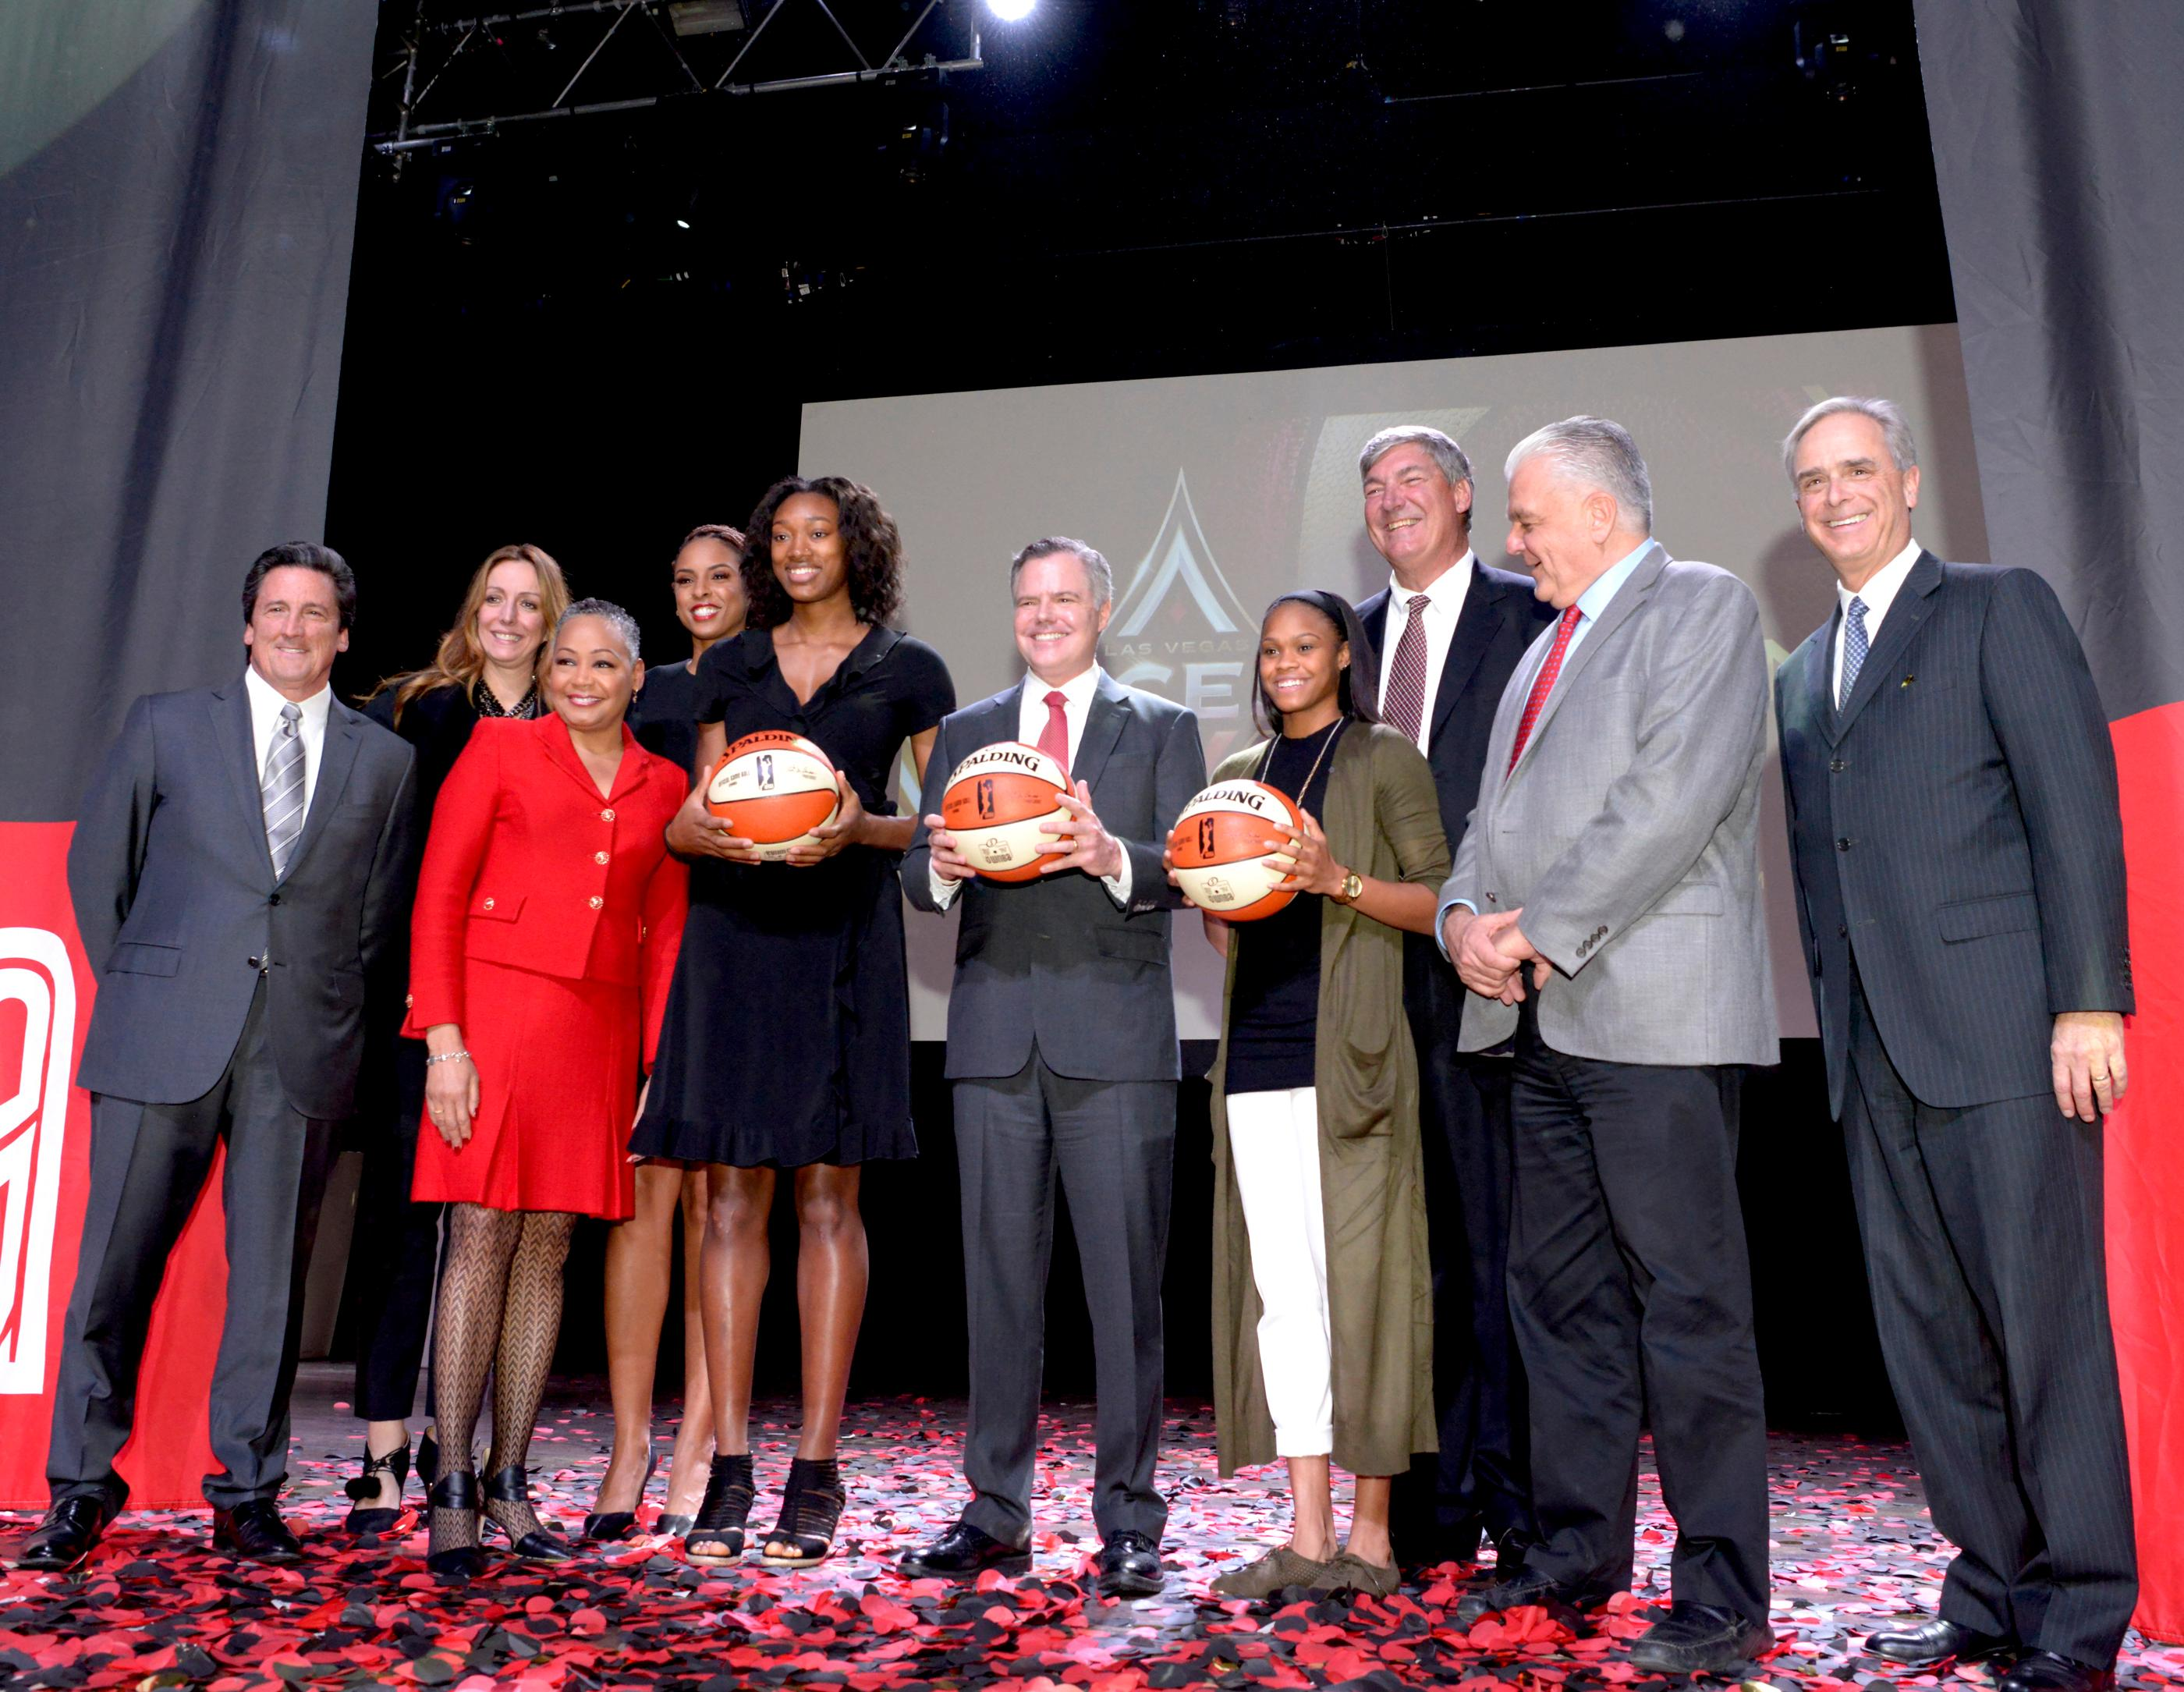 Las Vegas' newest professional sports franchise, the WNBA Las Vegas Aces is announced at a press conference in Mandalay Bay. Monday, December 11, 2017. CREDIT: Glenn Pinkerton/Las Vegas News Bureau